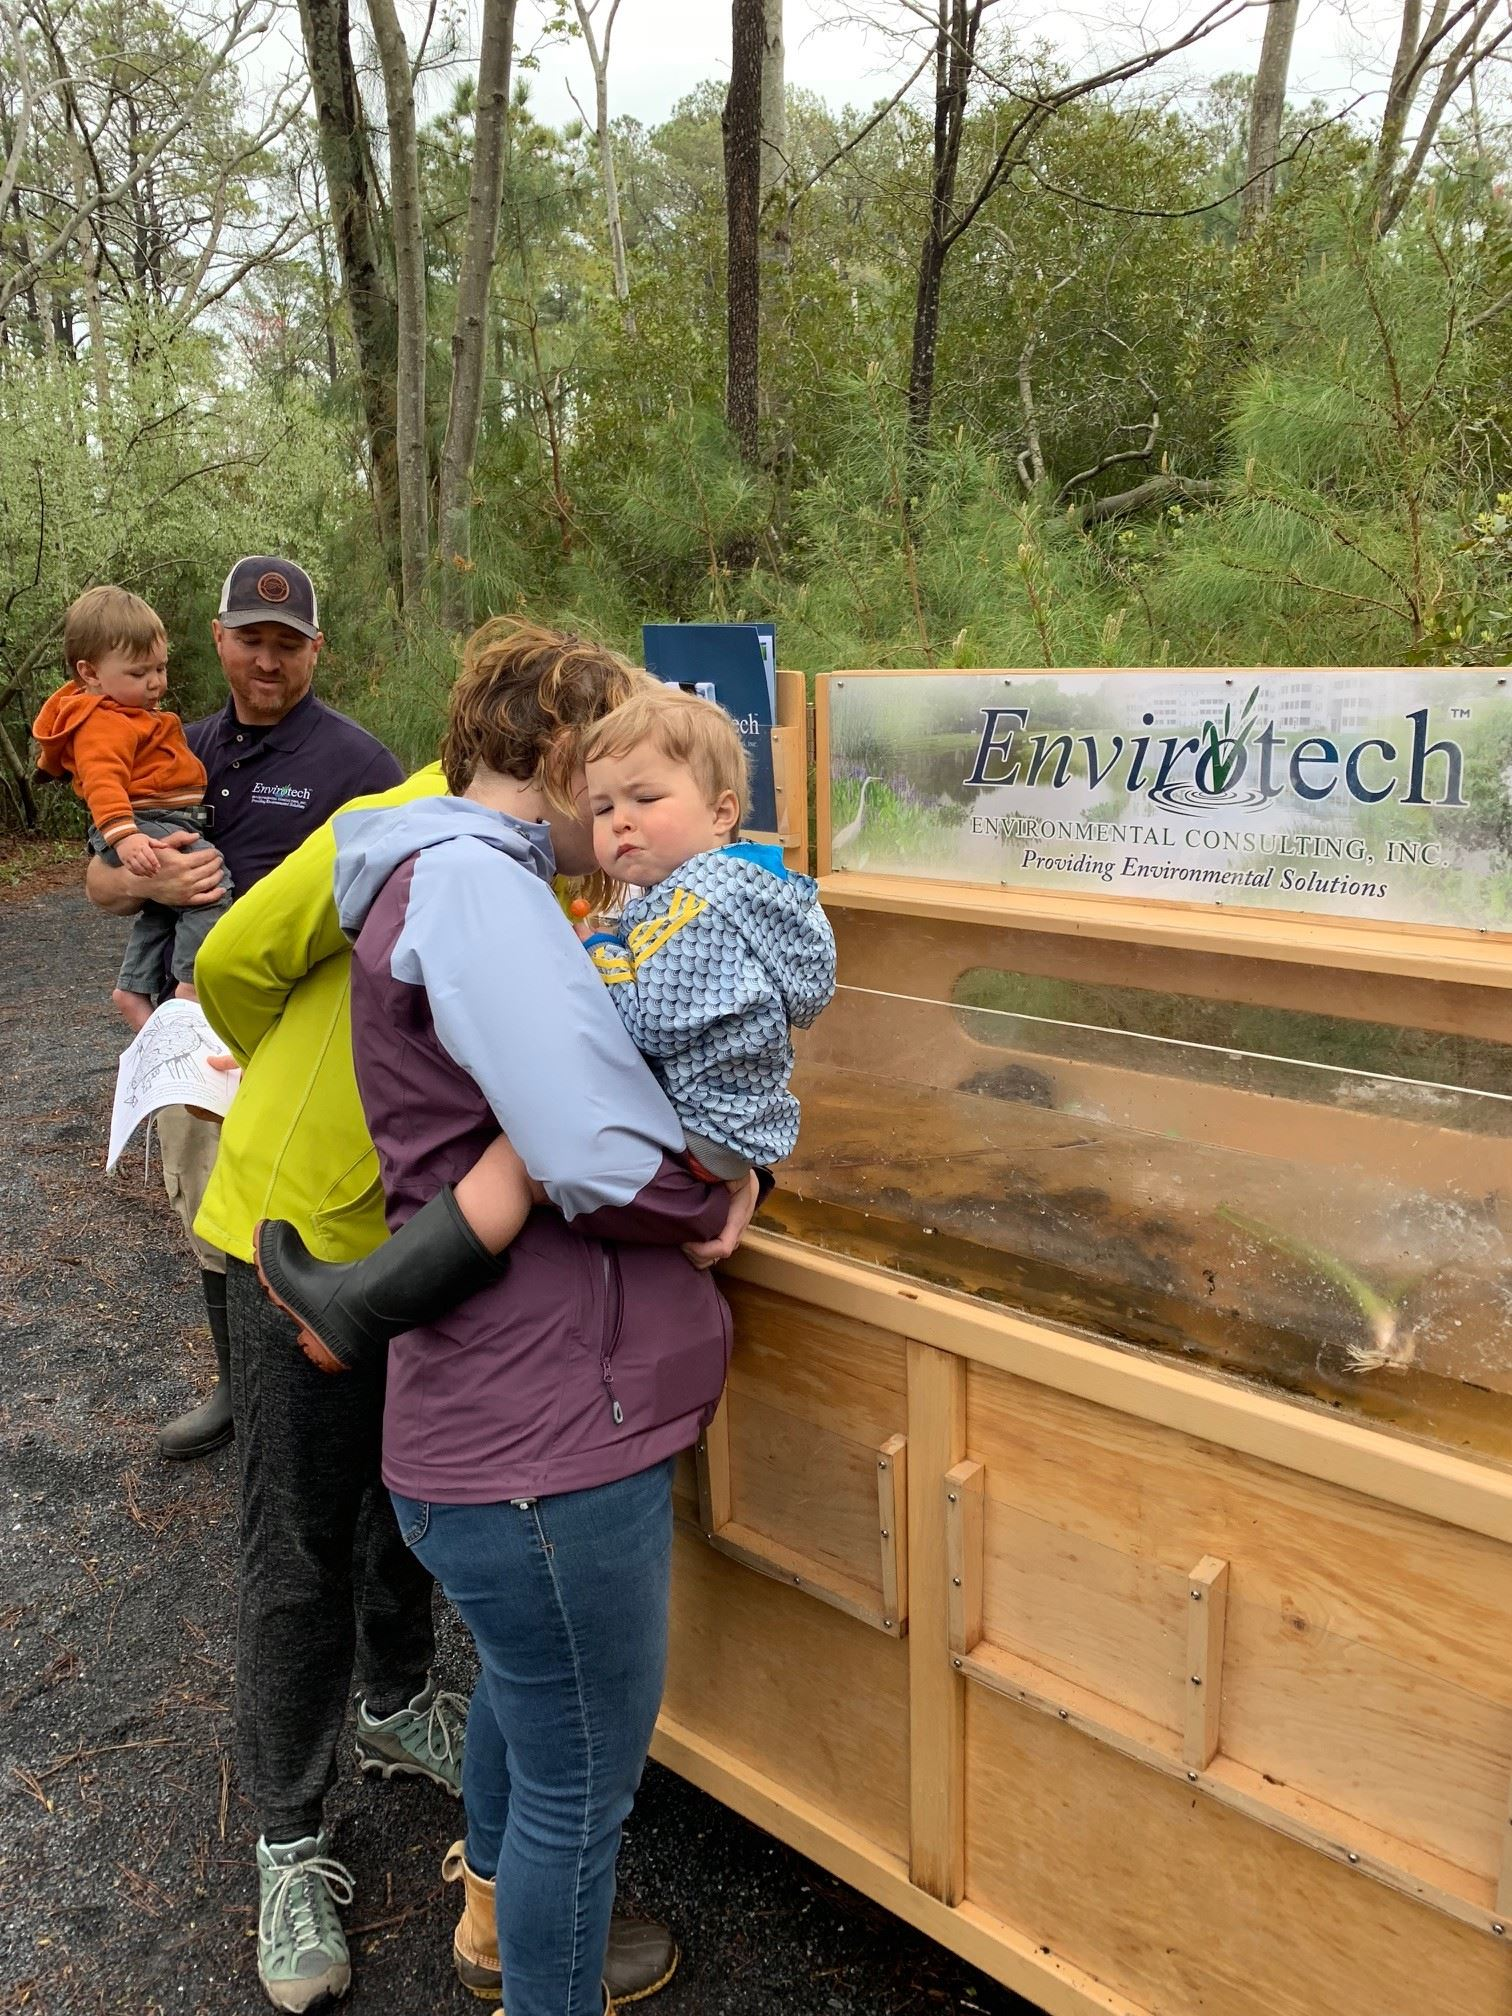 Envirotech at the Pond